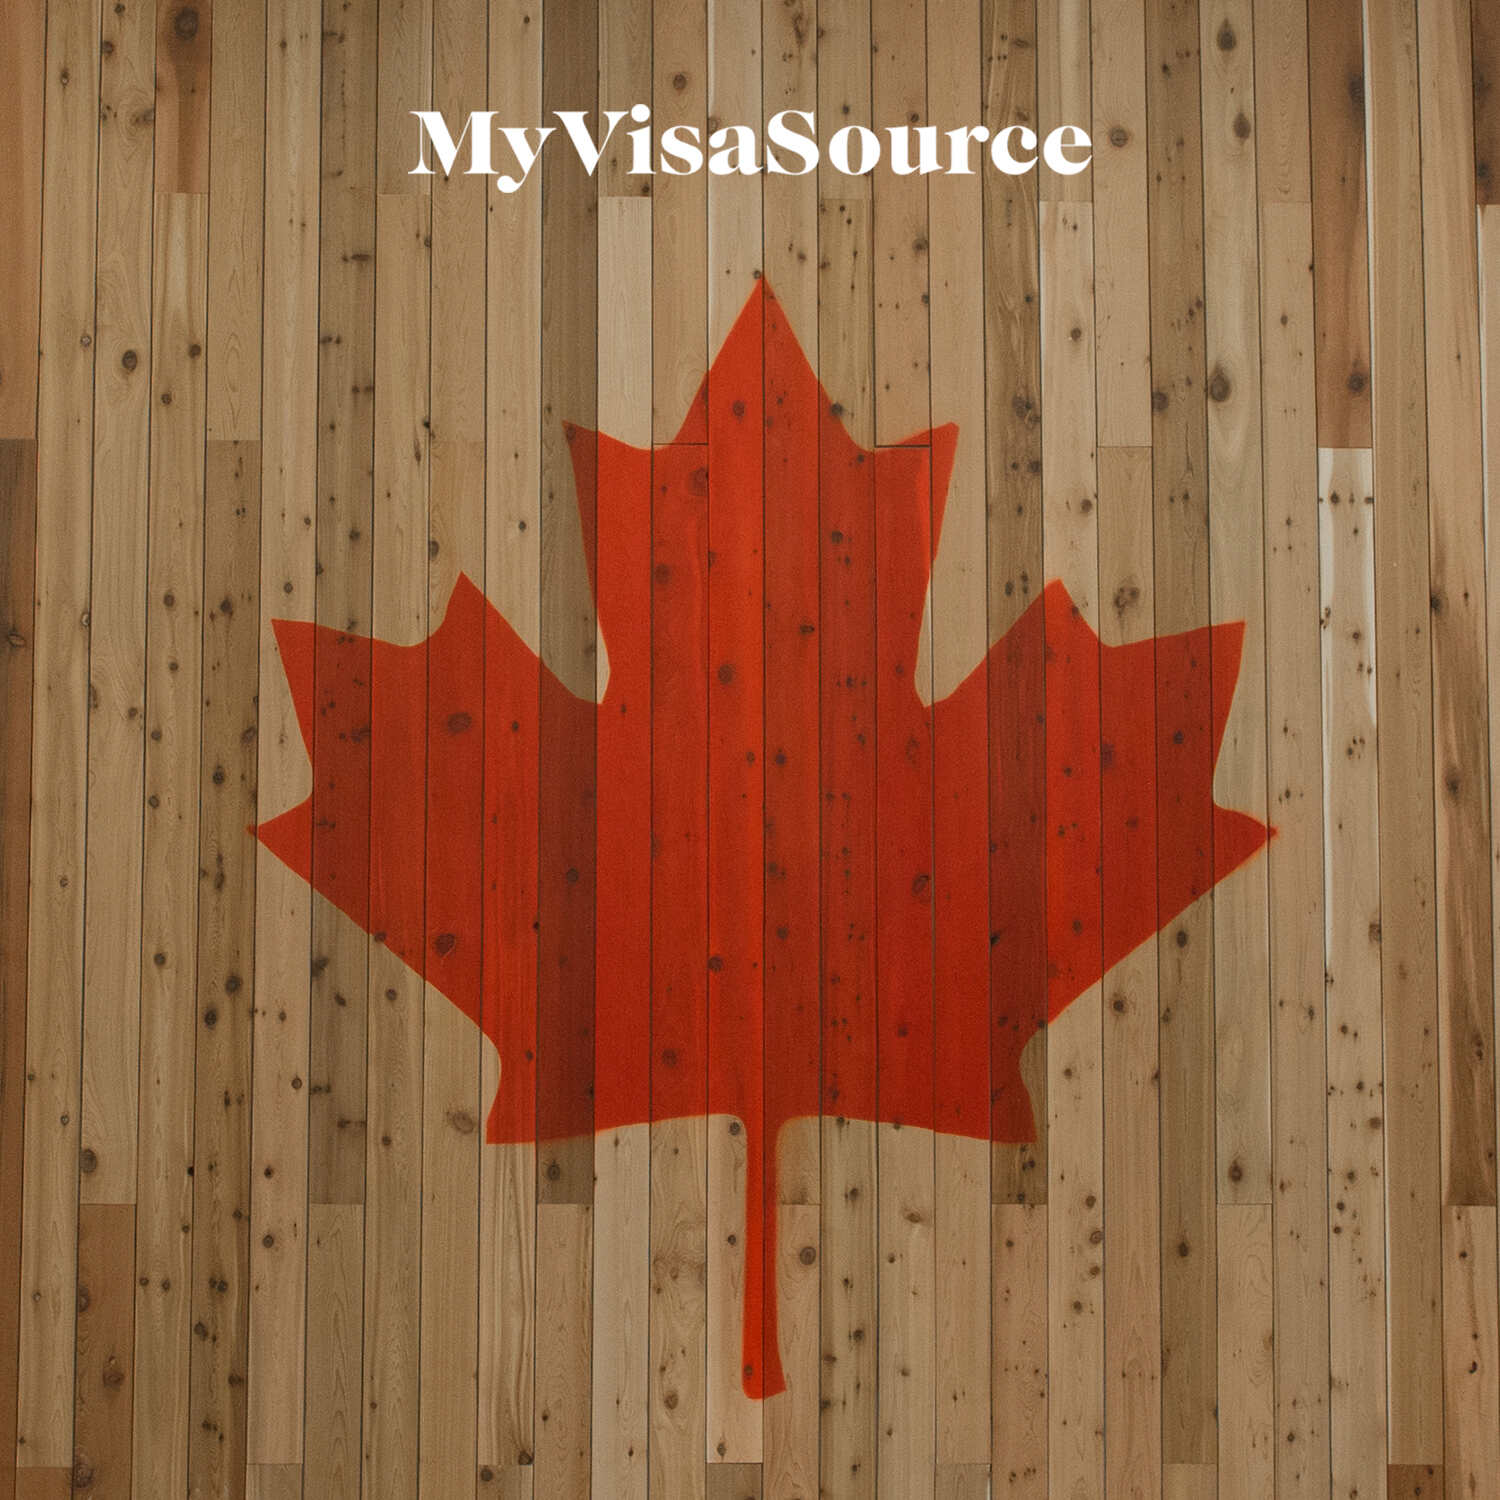 canadian red maple leaf over painted over wood panel my visa source